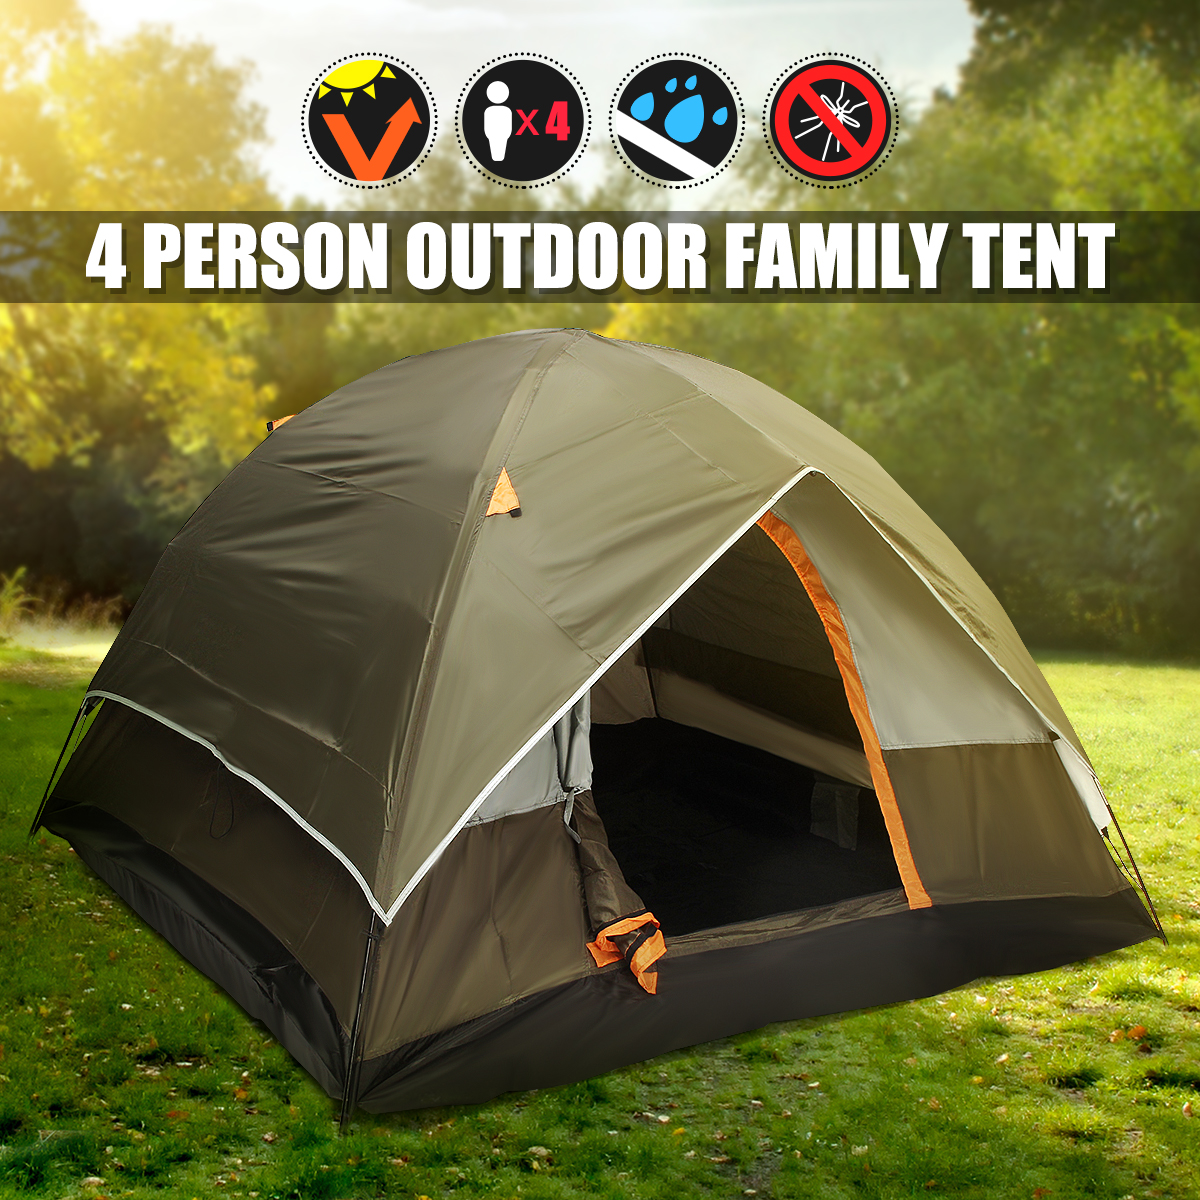 4 Person Double layer Waterproof UV Family Outdoor for Fishing, Hunting Adventure Family Party Camping Instant Tent outdoor camping hiking automatic camping tent 4person double layer family tent sun shelter gazebo beach tent awning tourist tent